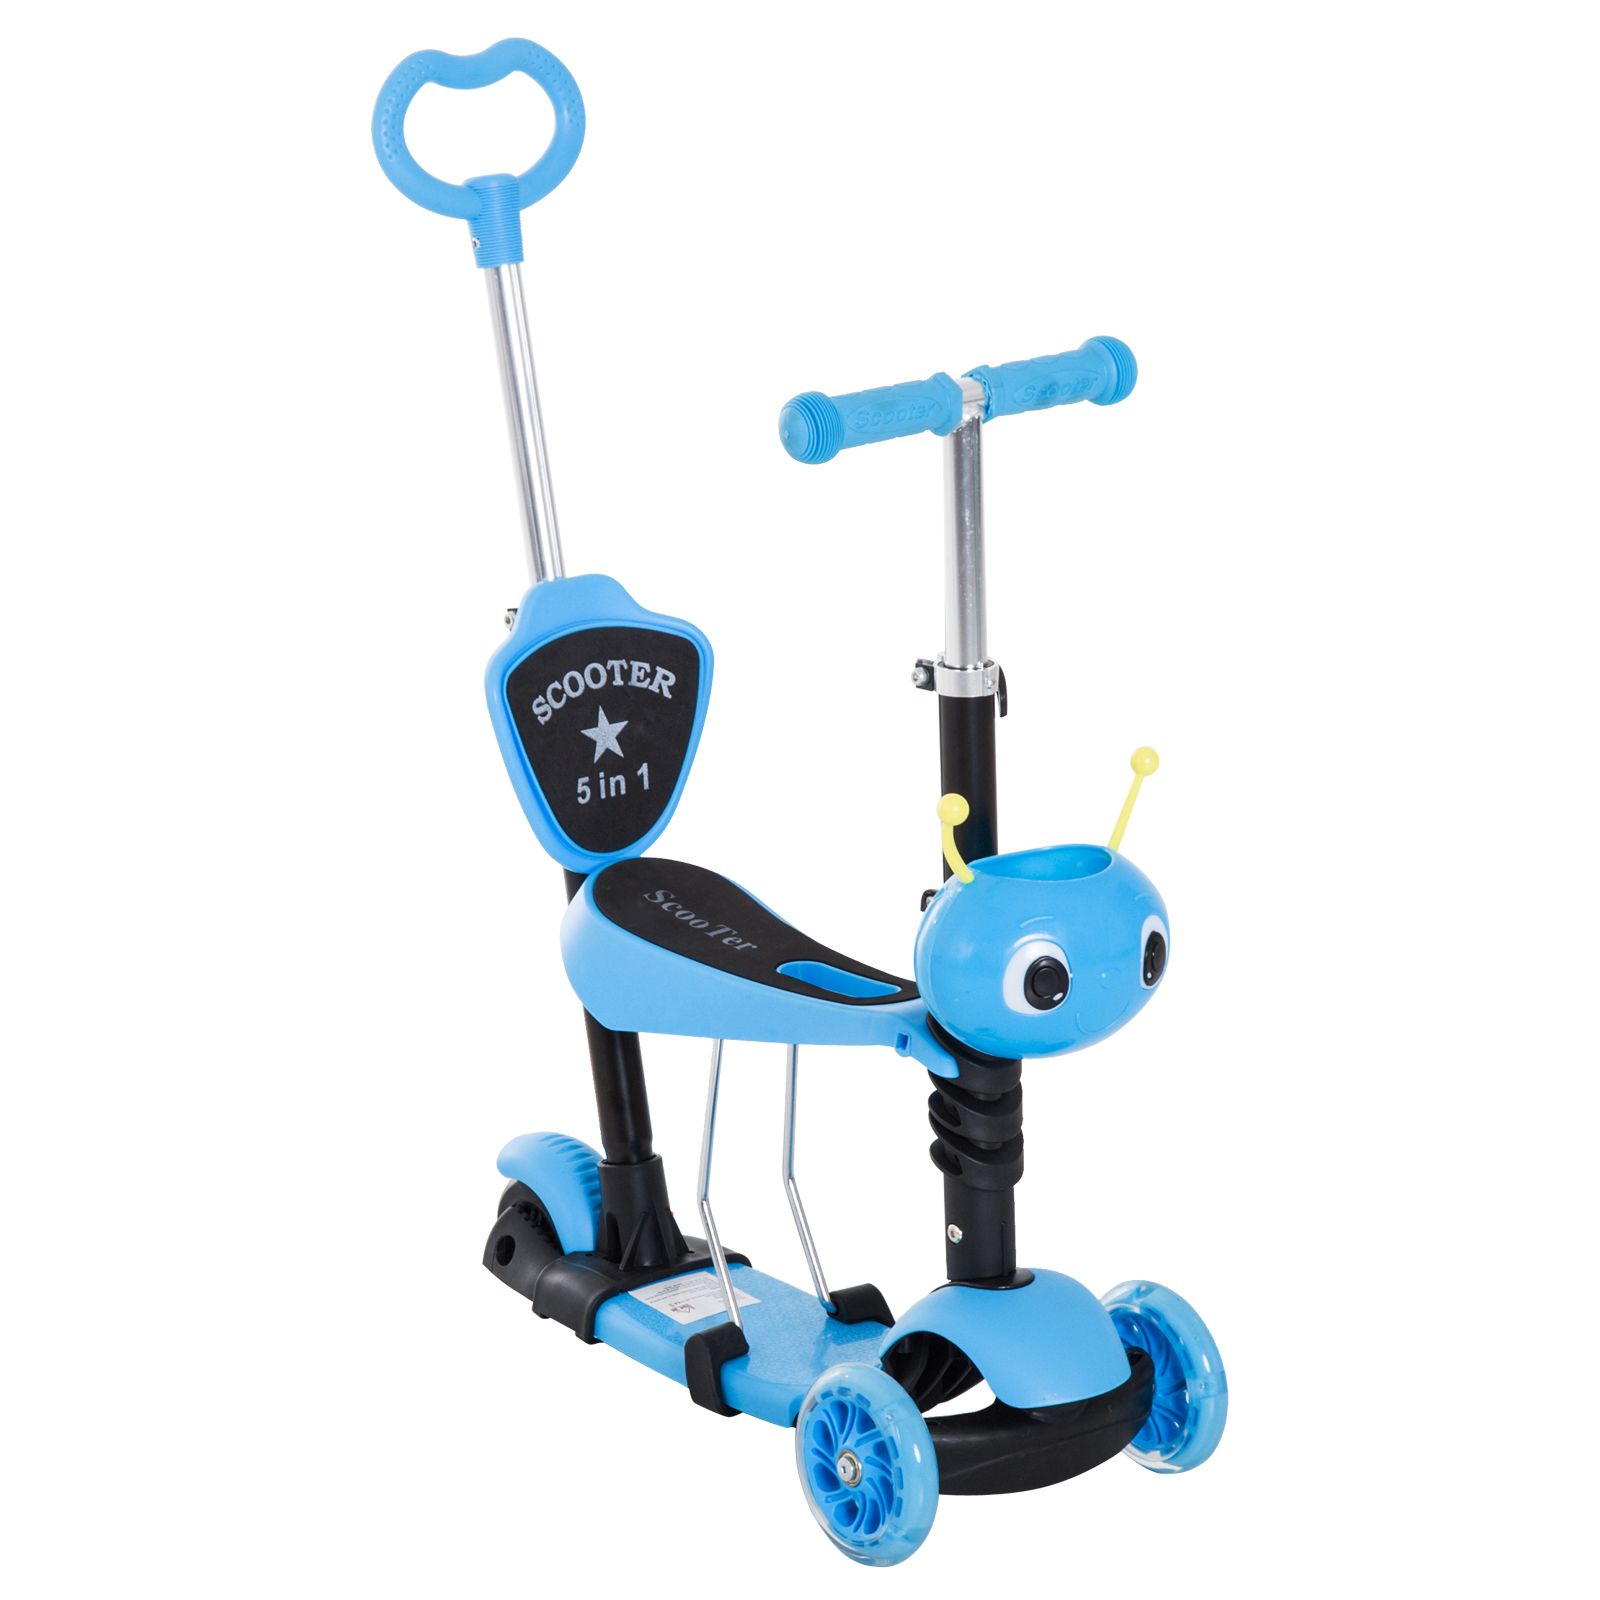 HOMCOM 5-in-1 Kids Kick Scooter W/Removable Seat-Blue